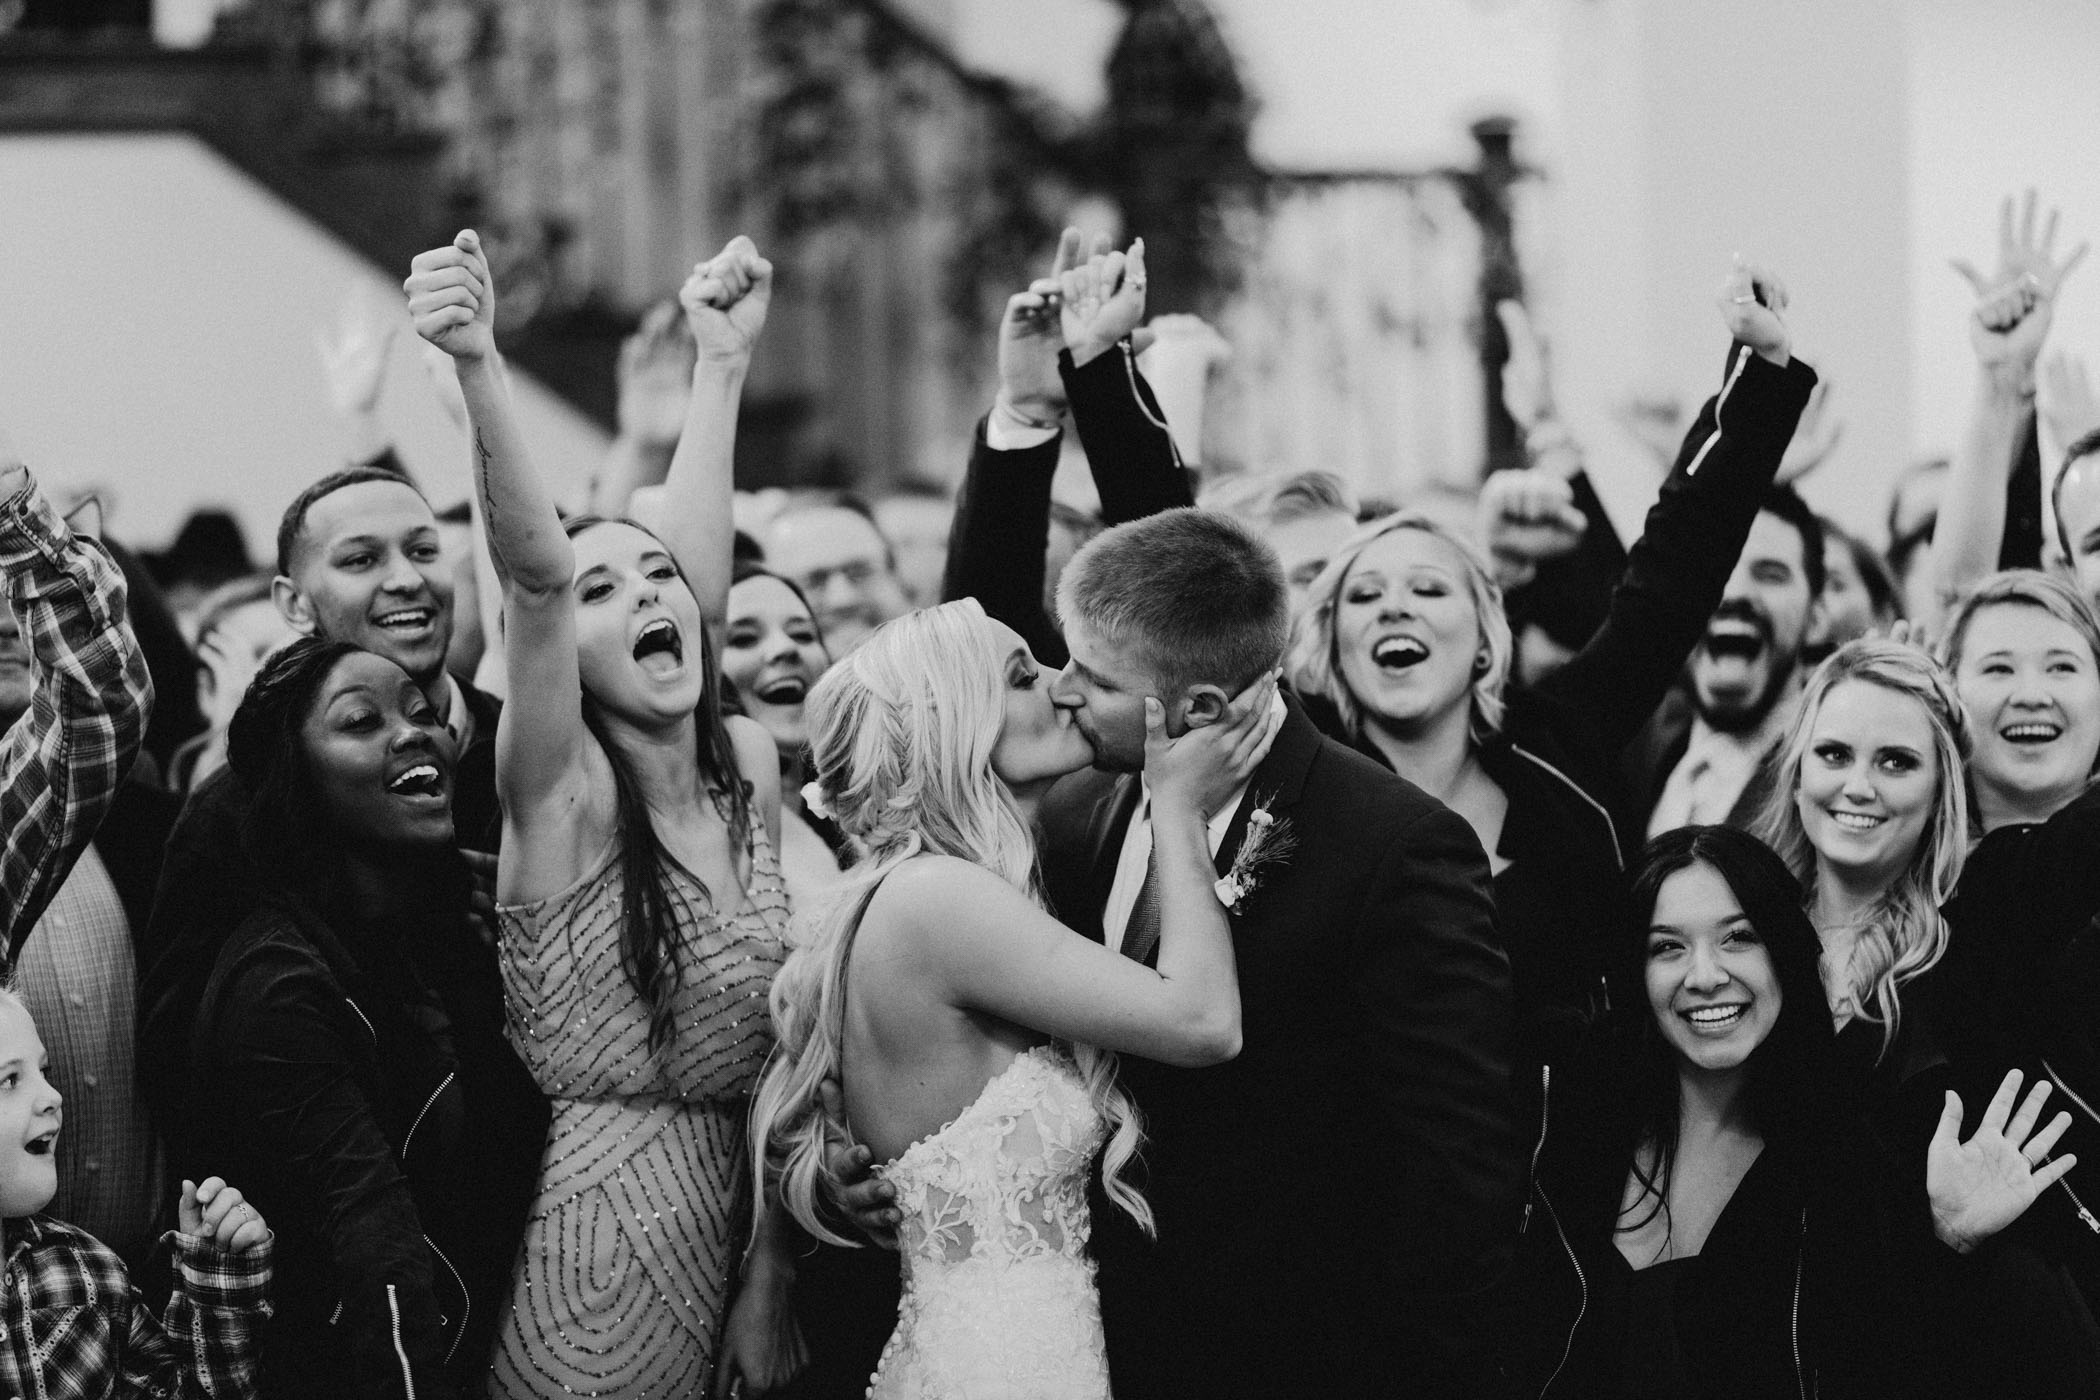 bride and groom kissing while guests cheer in black and white wedding photo